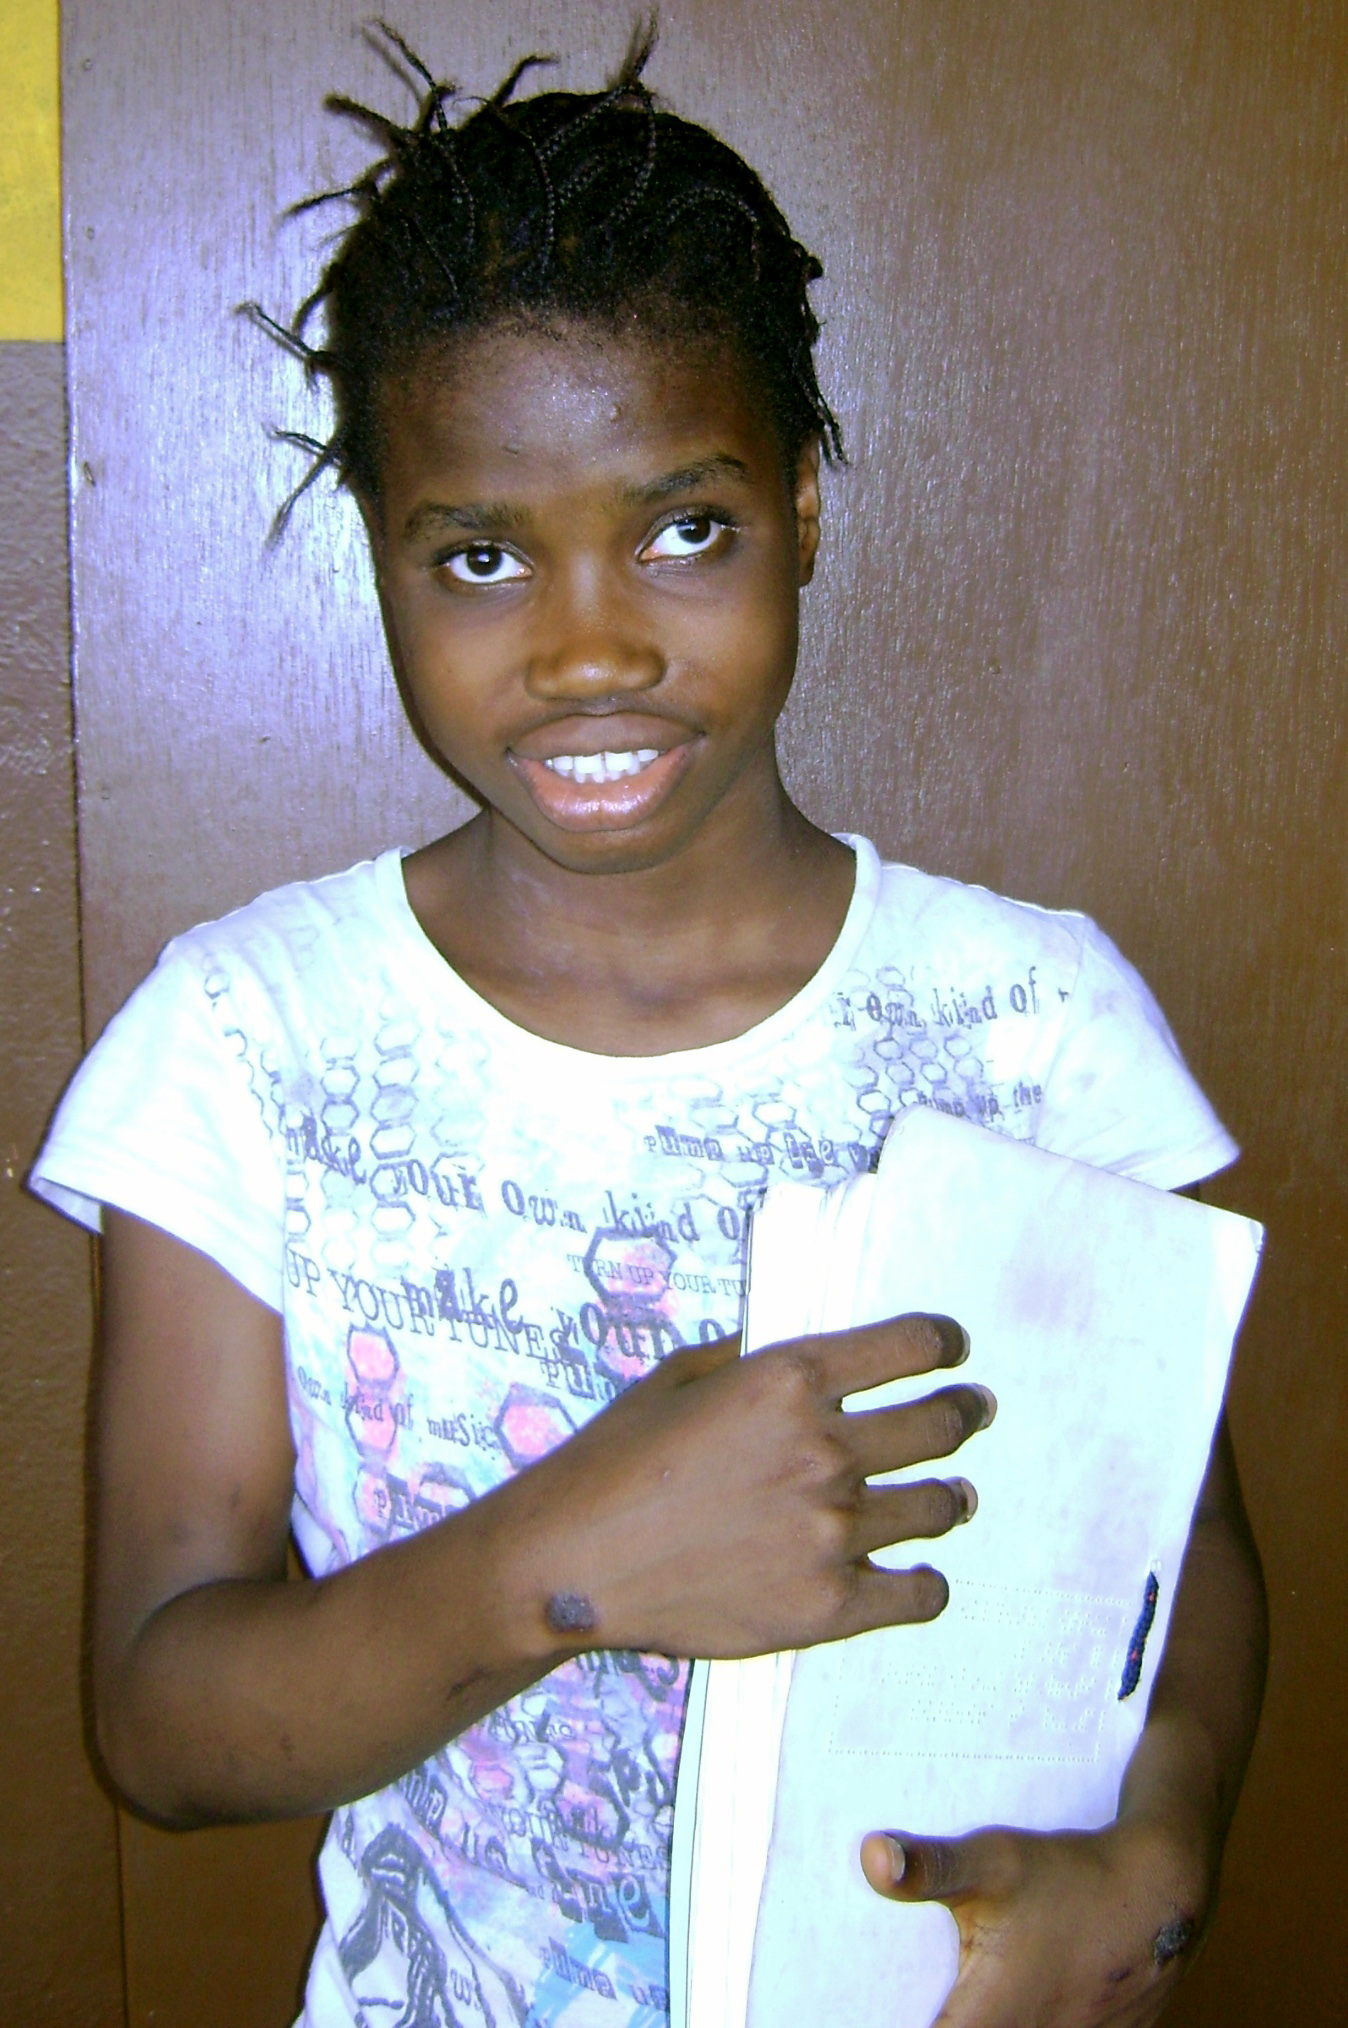 A blind student carrying her Braille notebook